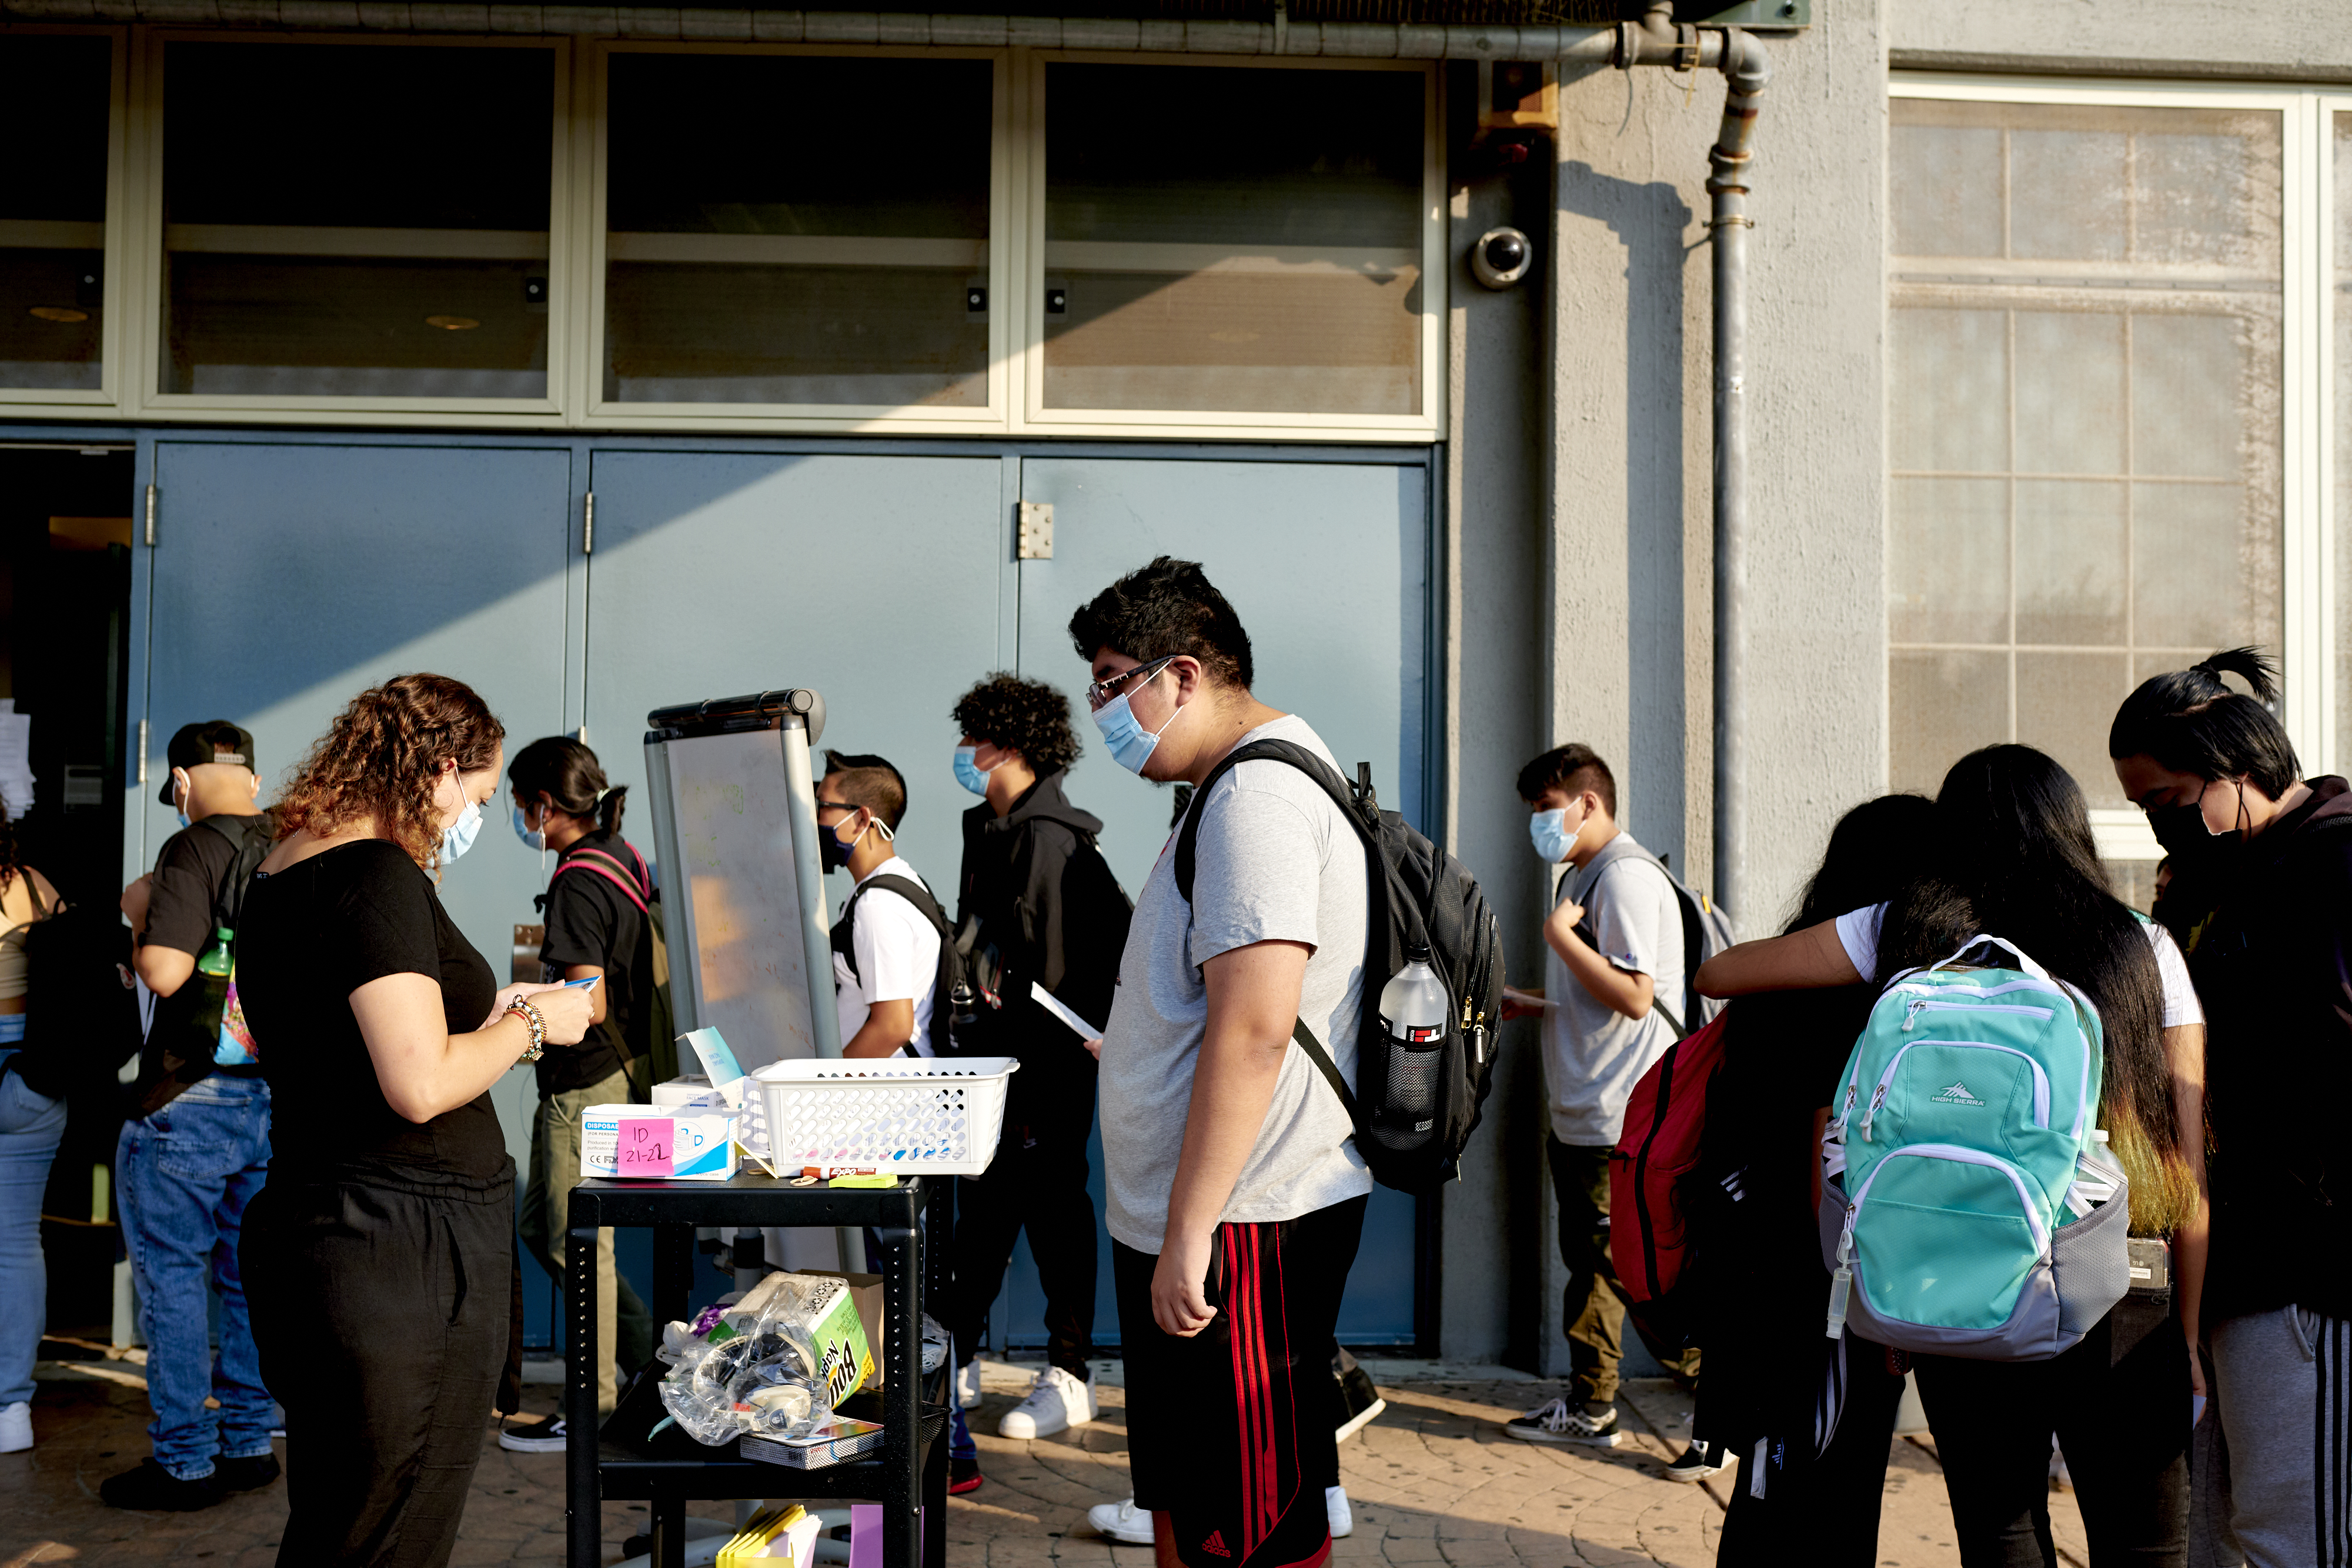 Students wait for COVID screening forms outside of the entrance of their school.